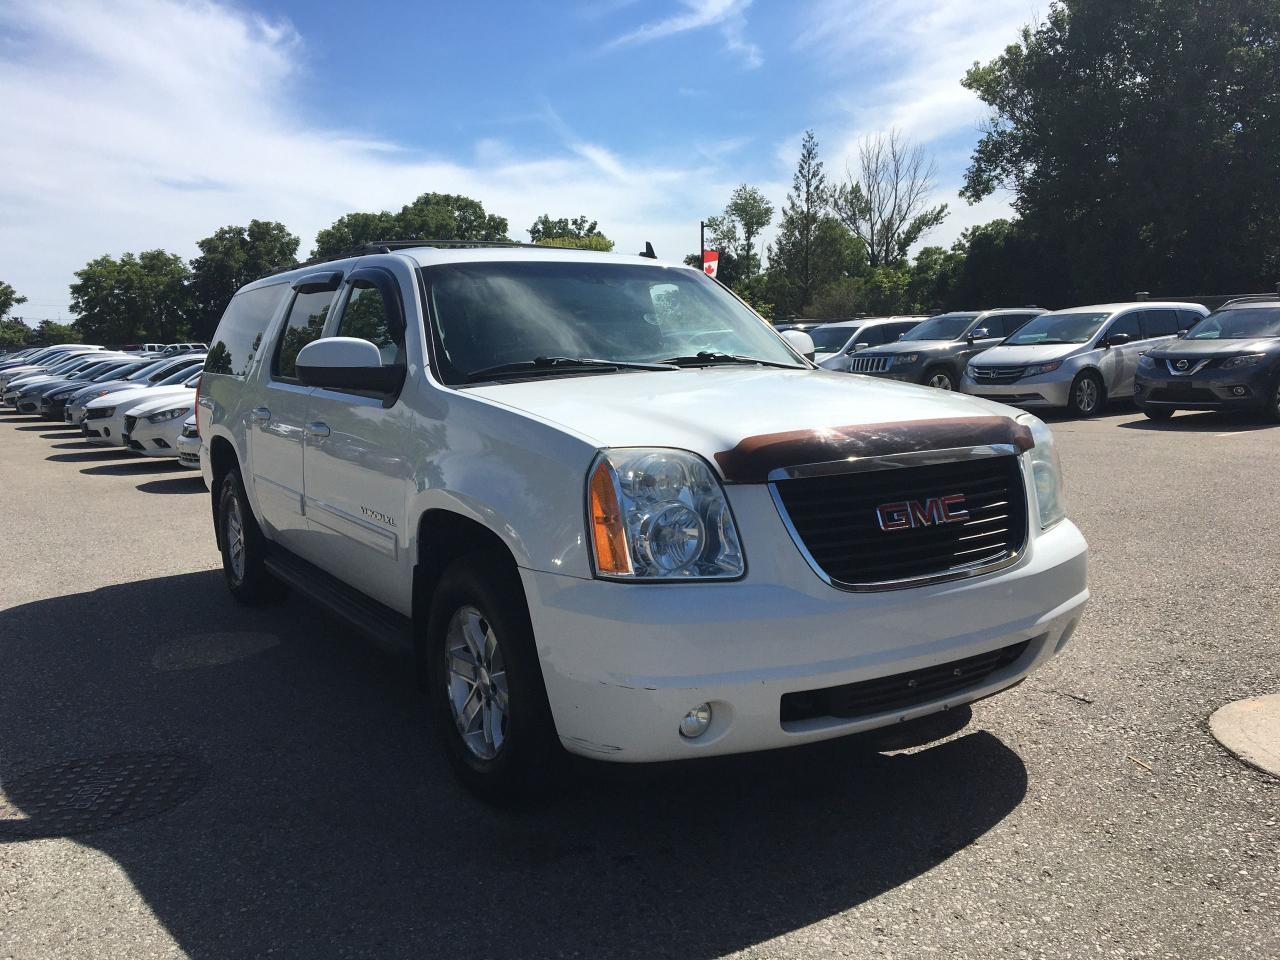 used 2010 gmc yukon xl slt for sale in london, ontario carpages.ca